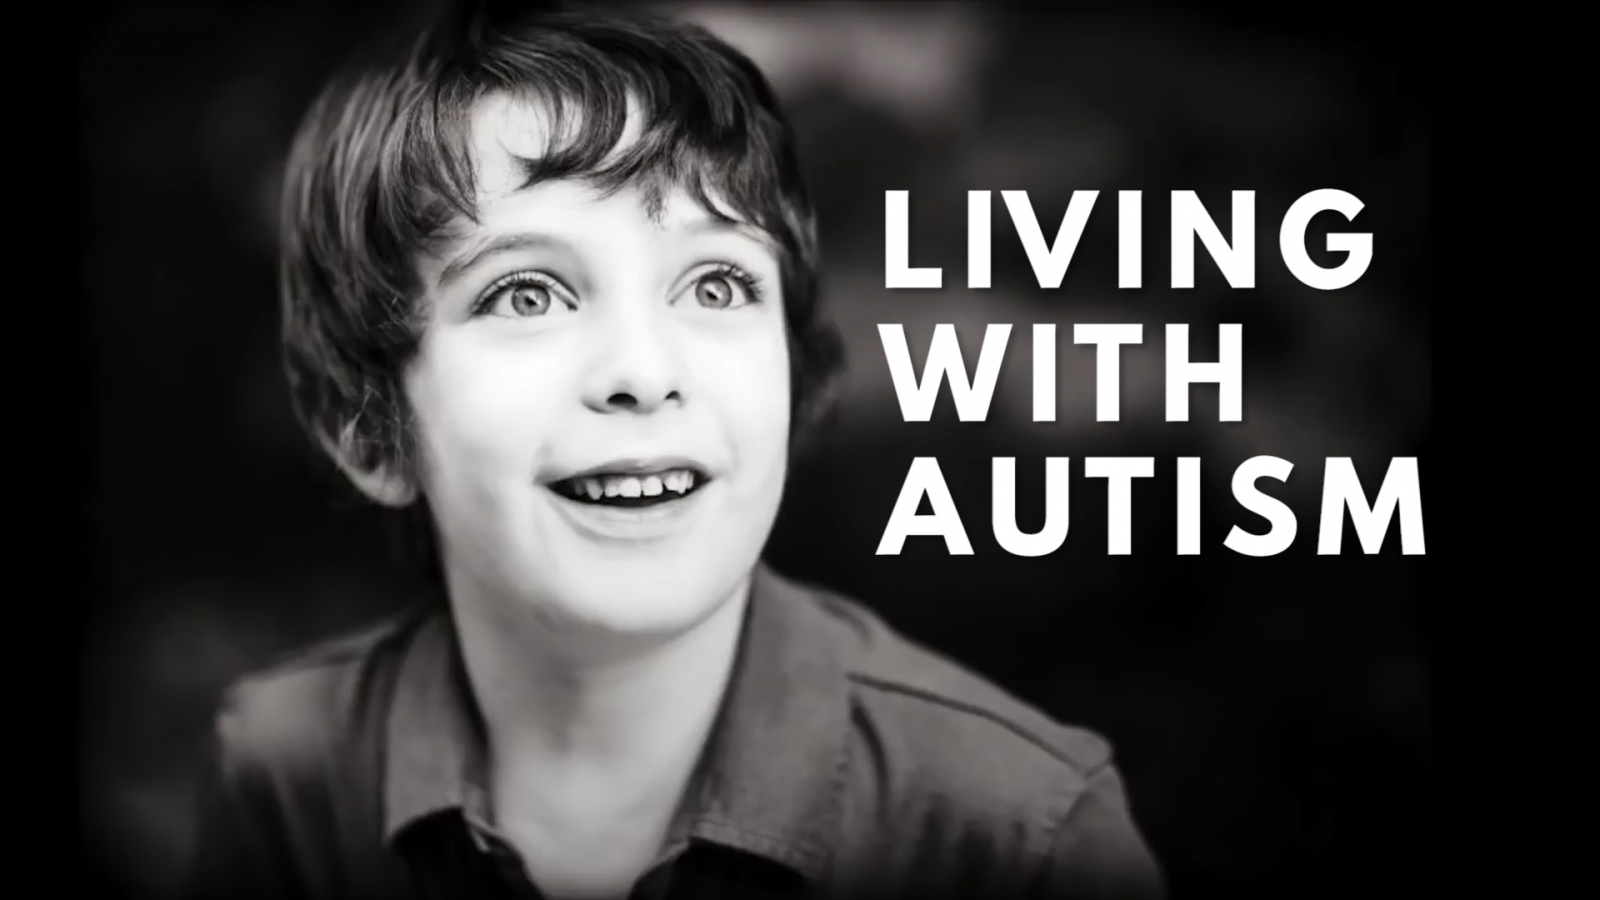 Autistic boy shares heartfelt video about his life